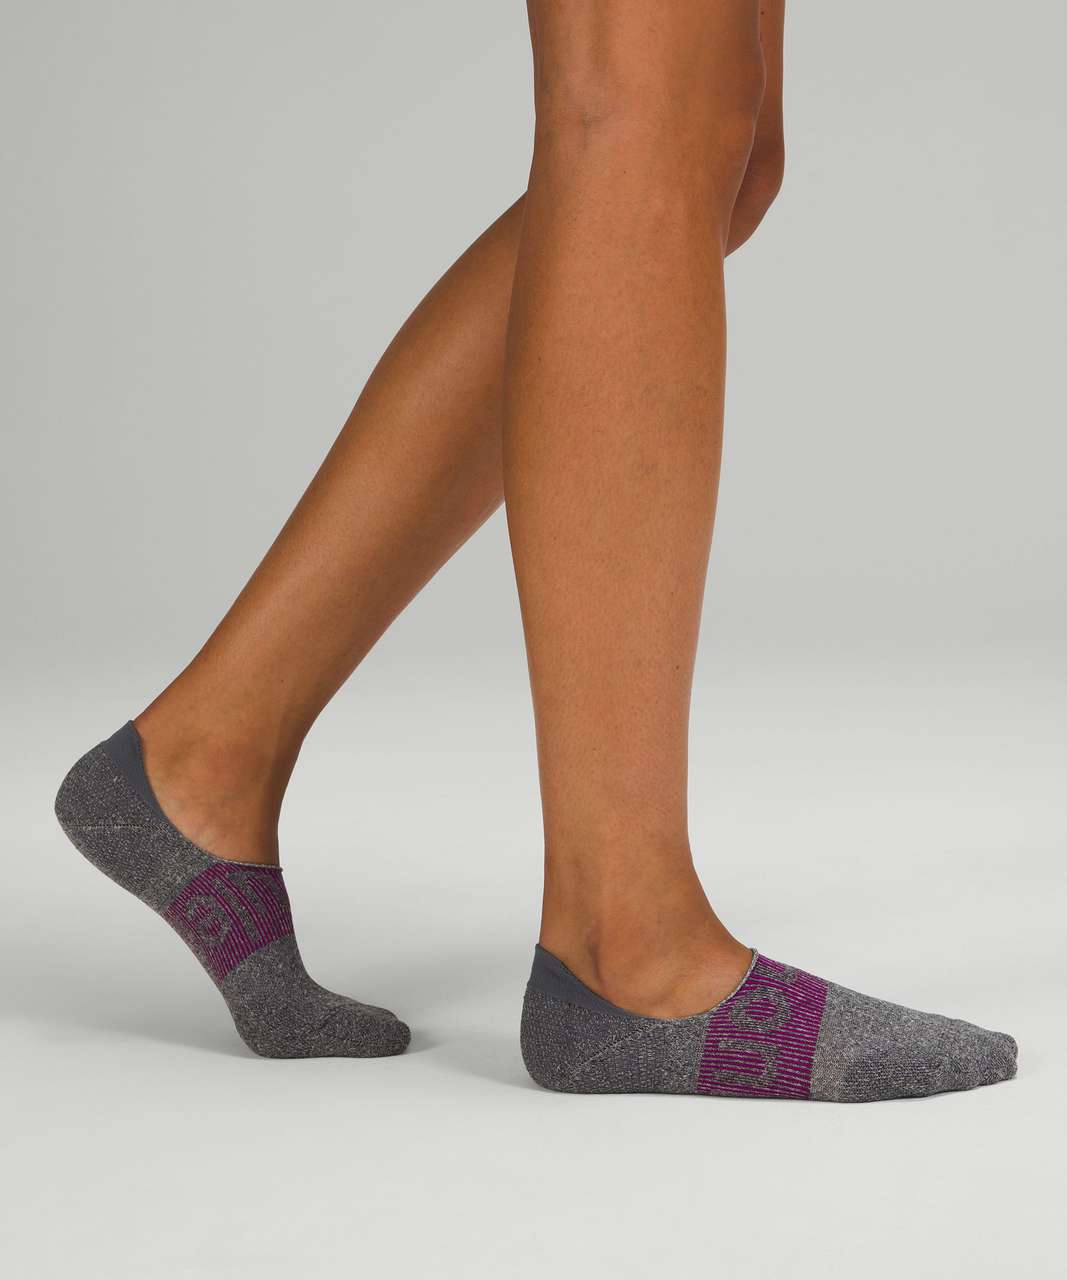 Lululemon Power Stride No-Show Sock with Active Grip *3 Pack - Heather Grey / Delicate Mint / Ripened Raspberry